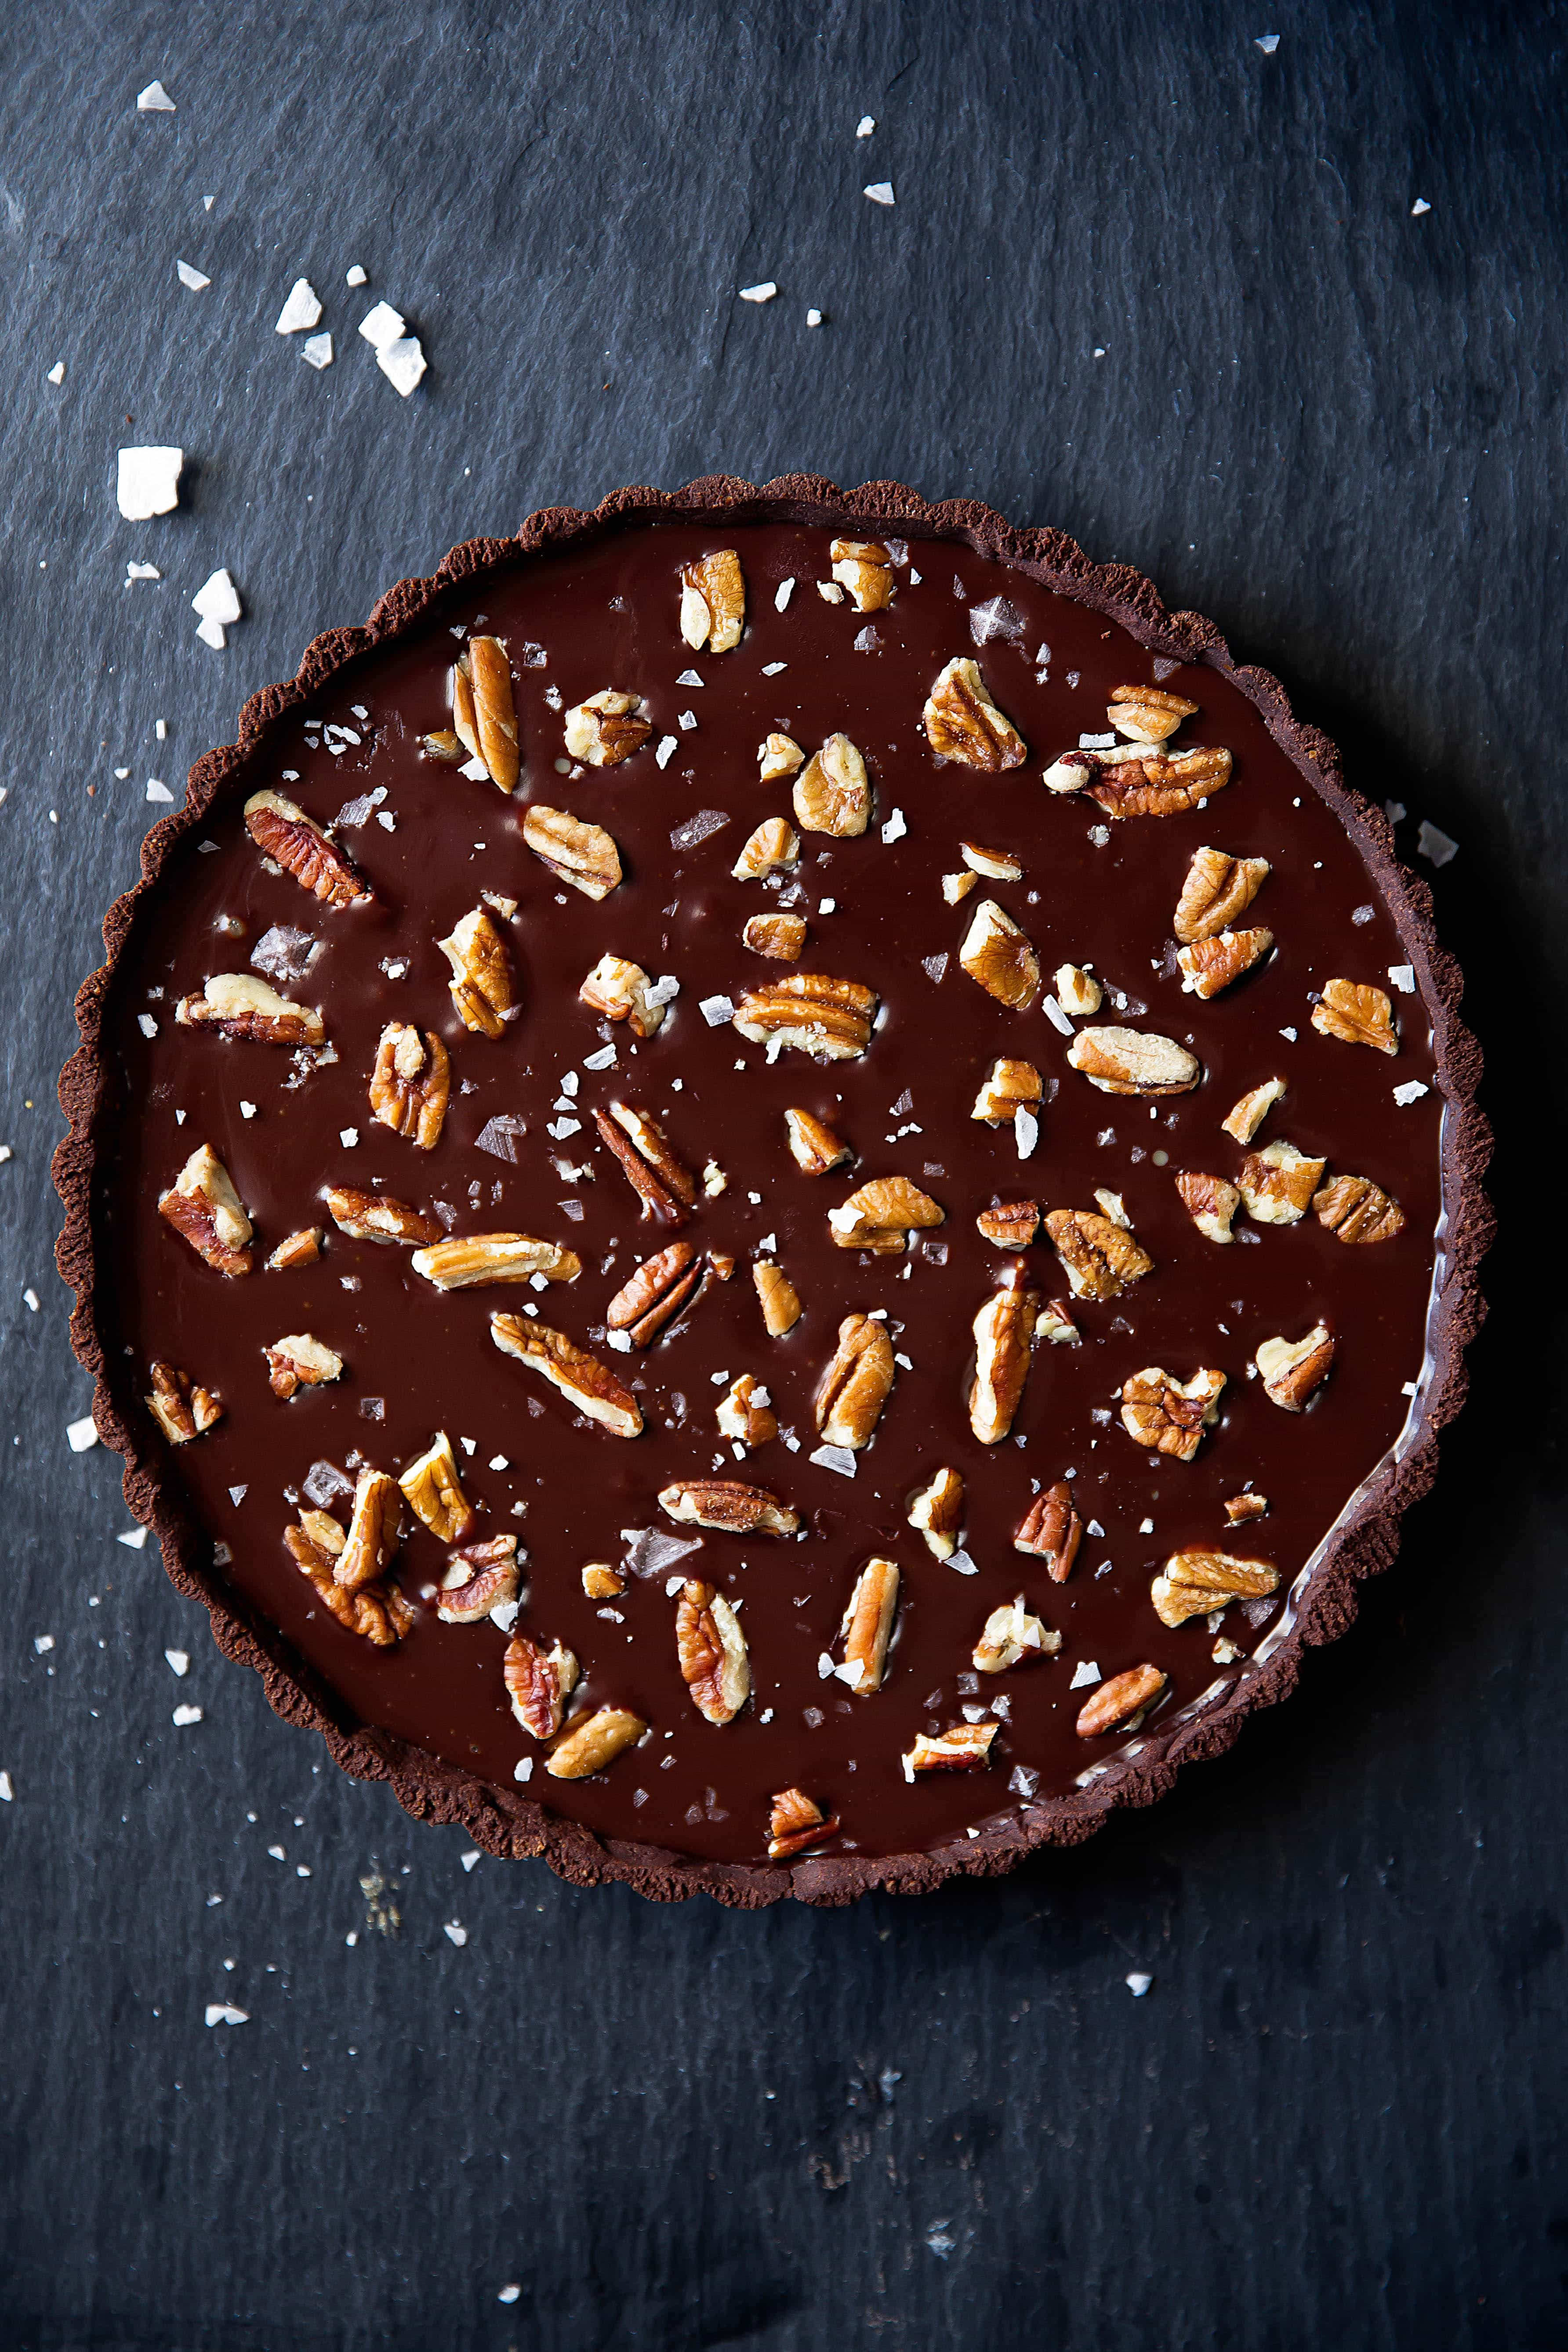 Salted Caramel Chocolate Tart has a chocolate pretzel crust, salted caramel center, and is topped with melted chocolate, pecans, and sea salt. Uhm, swoon?!